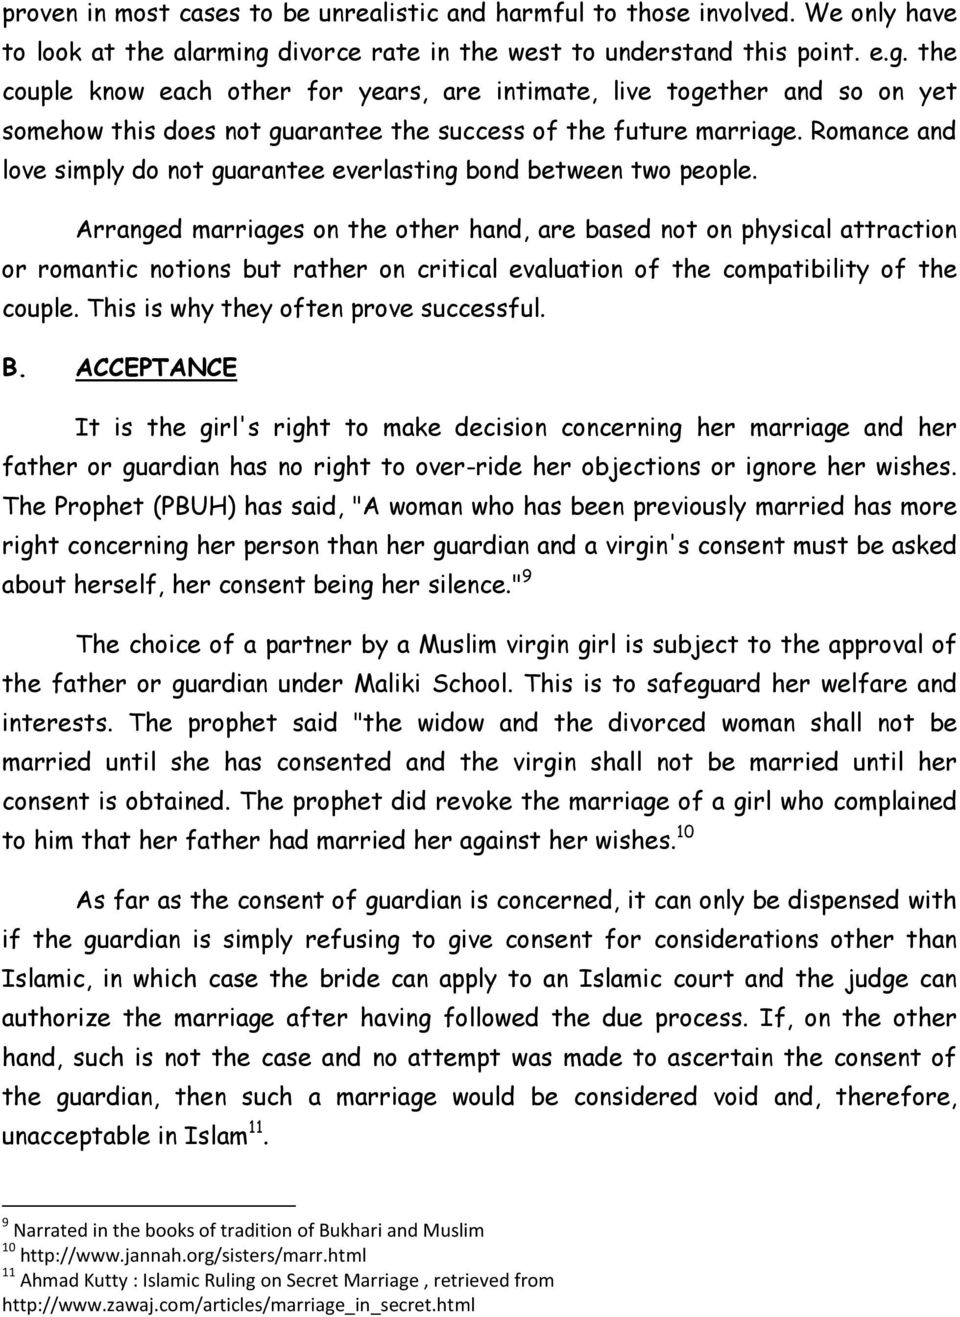 REQUIREMENTS OF A VALID ISLAMIC MARRIAGE VIS-À-VIS REQUIREMENTS OF A